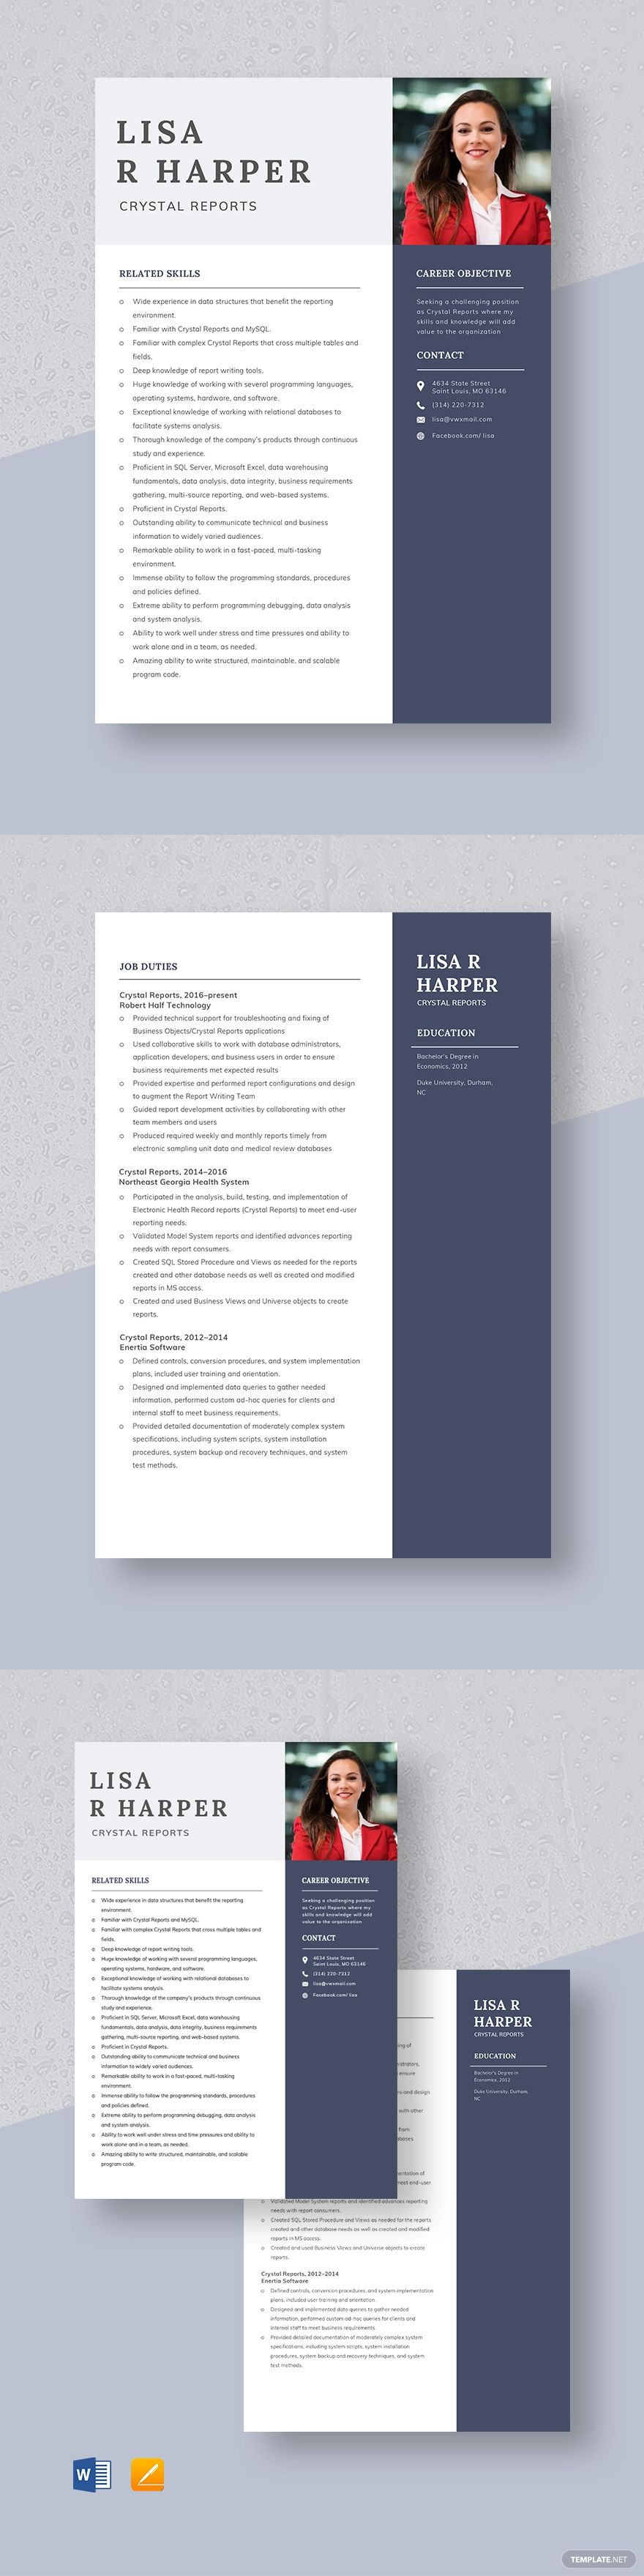 Crystal Reports Resume Template #AD, , #sponsored, #Reports, #Crystal, #Template, #Resume